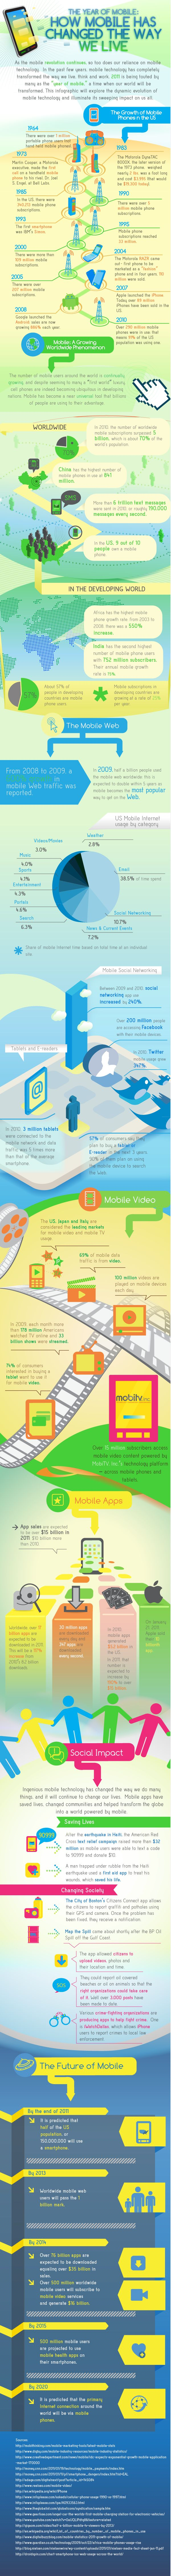 via Anise Smith via Devstand onto Mobile Marketing  The Year of Mobile: How Mobile Has Changed the Way We Live [Infographic]: Mobile Phones, Mobiles Web, Mobiles Changing, Infographic Mobiles, Living Infographic, Mobiles Infographic, 5 Years, Mobiles Marketing, Mobiles Phones